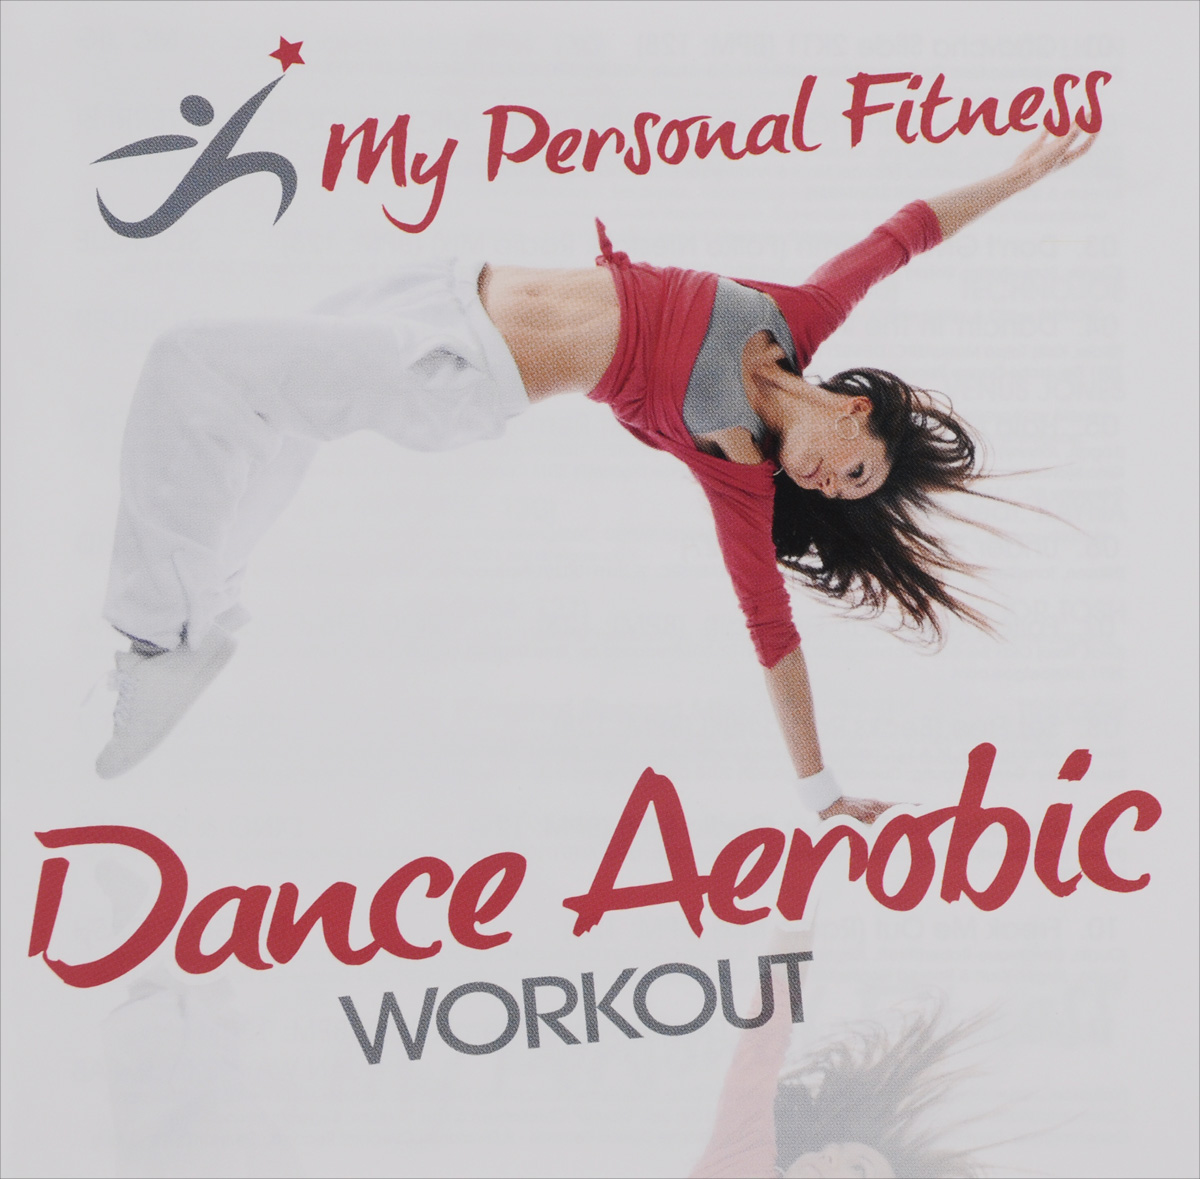 My Personal Fitness. Dance Aerobic Workout